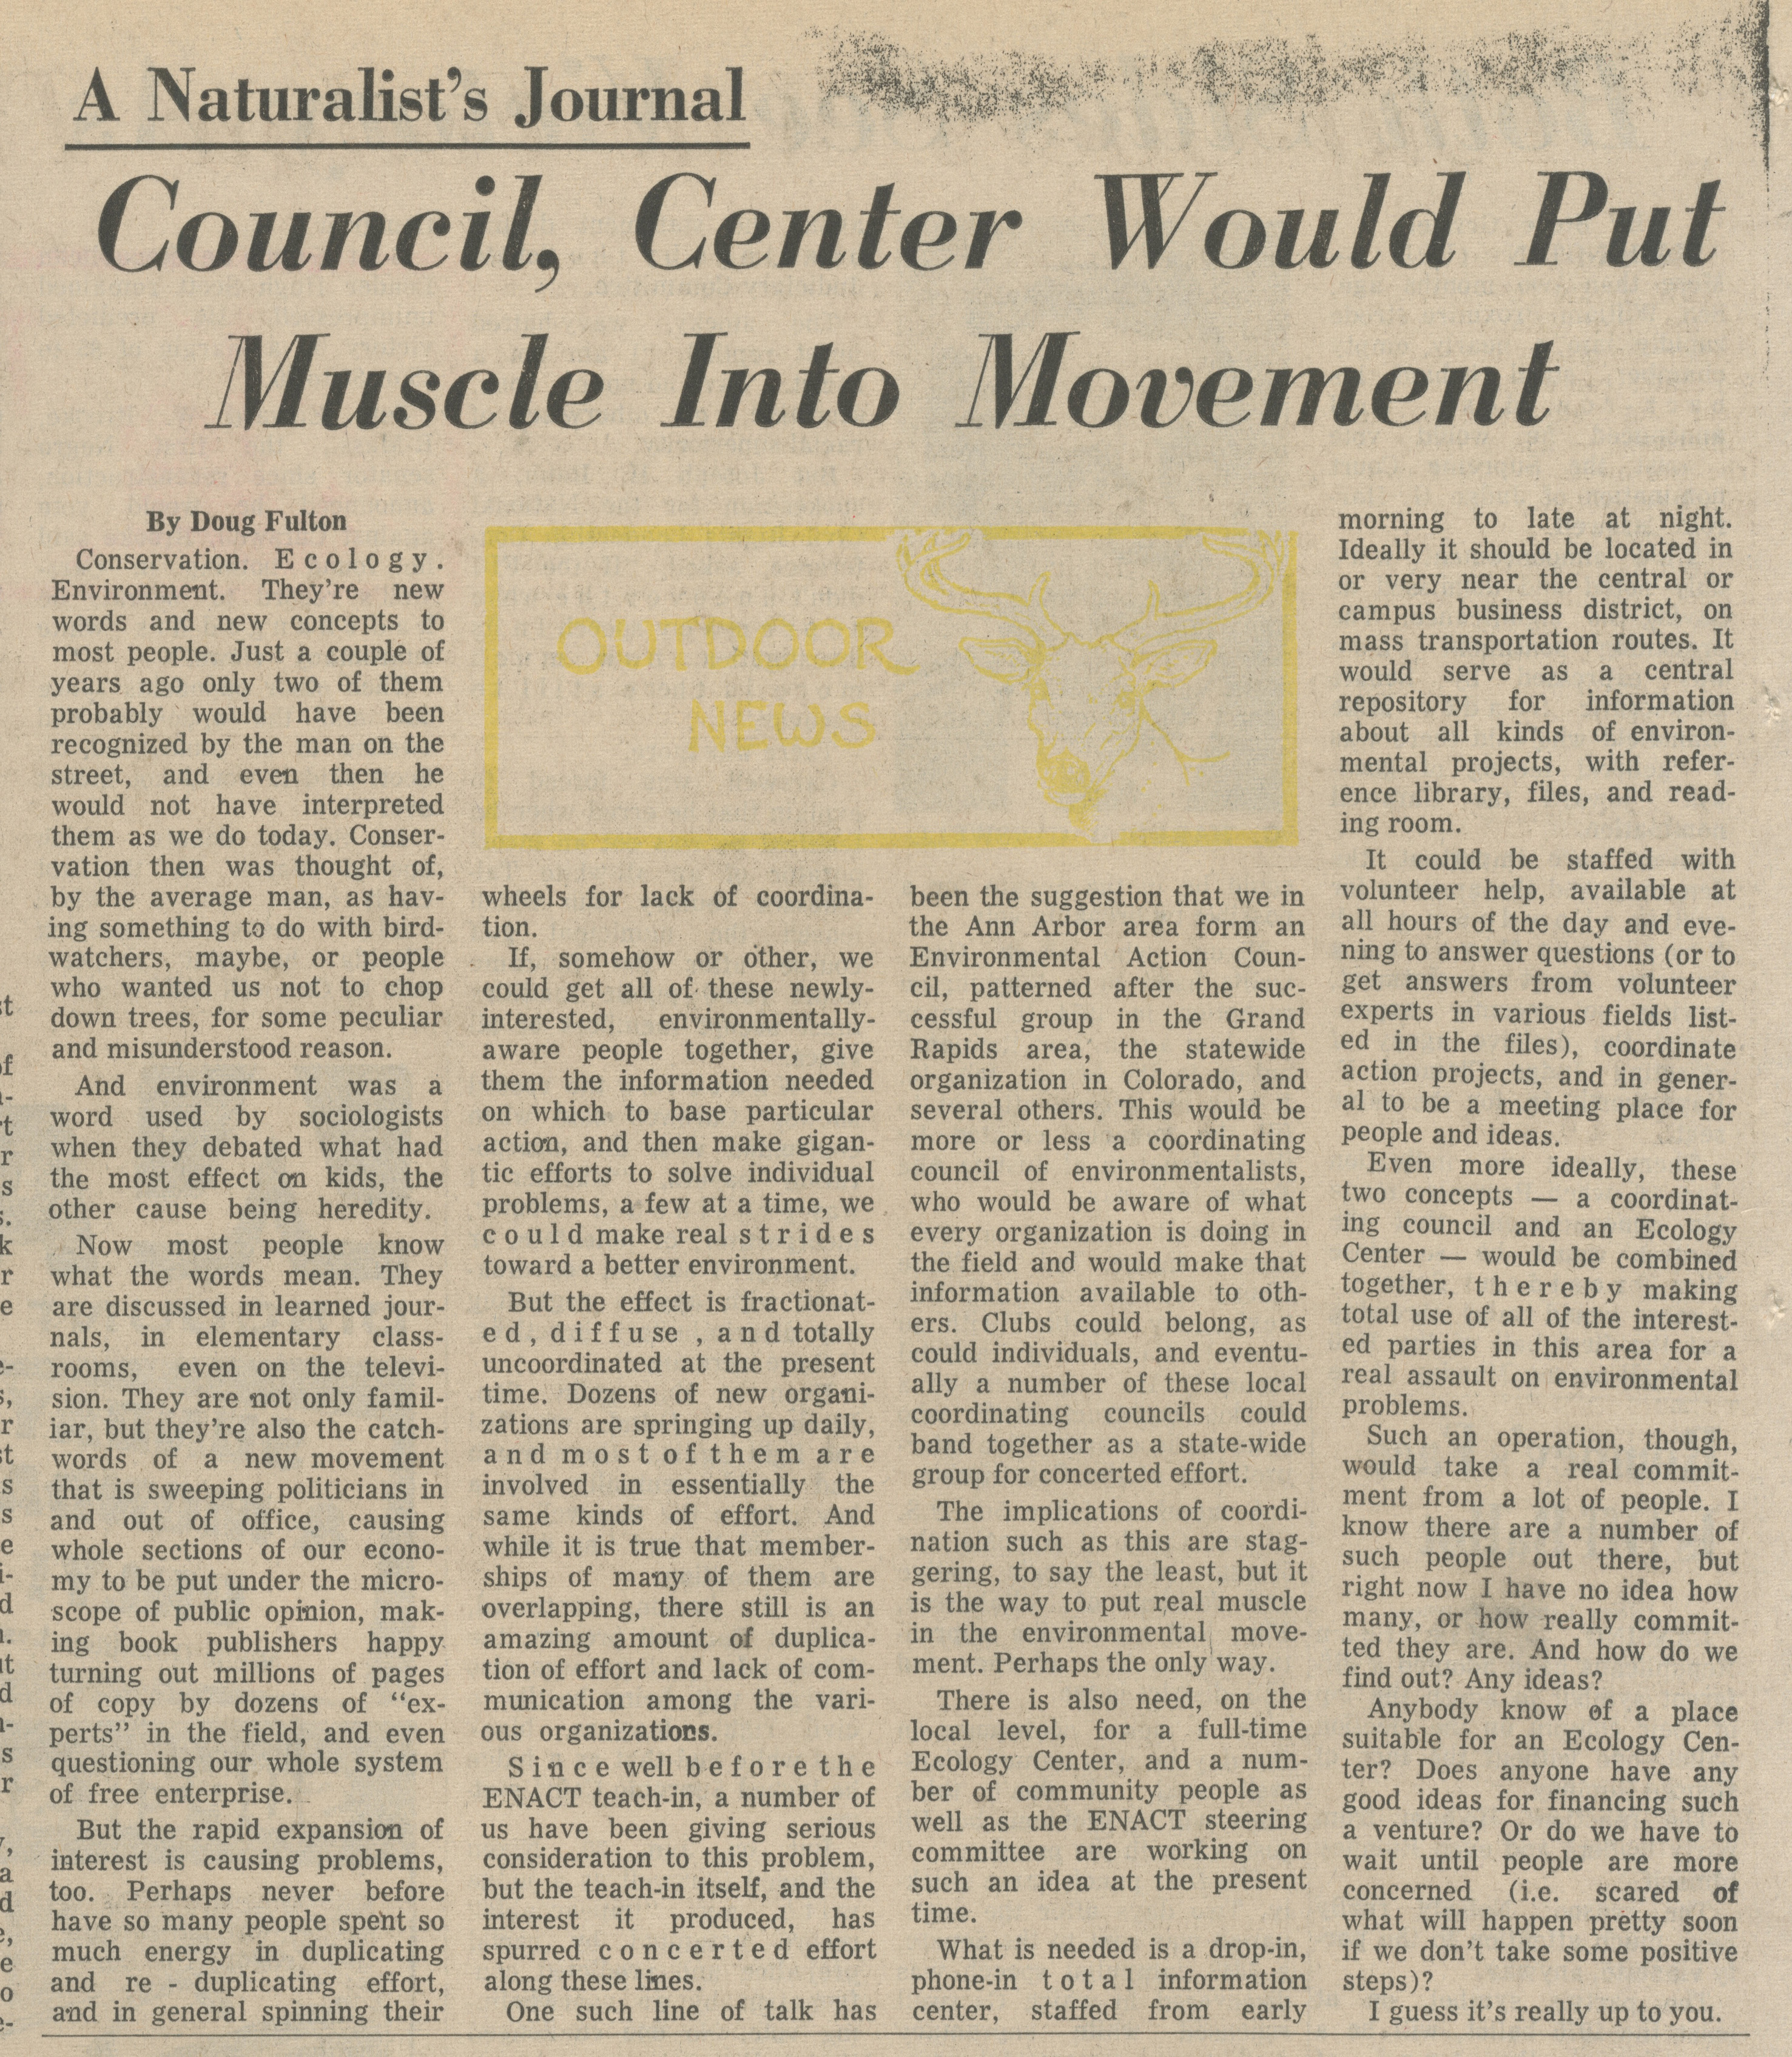 Council, Center Would Put Muscle Into Movement - A Naturalist's Journal image